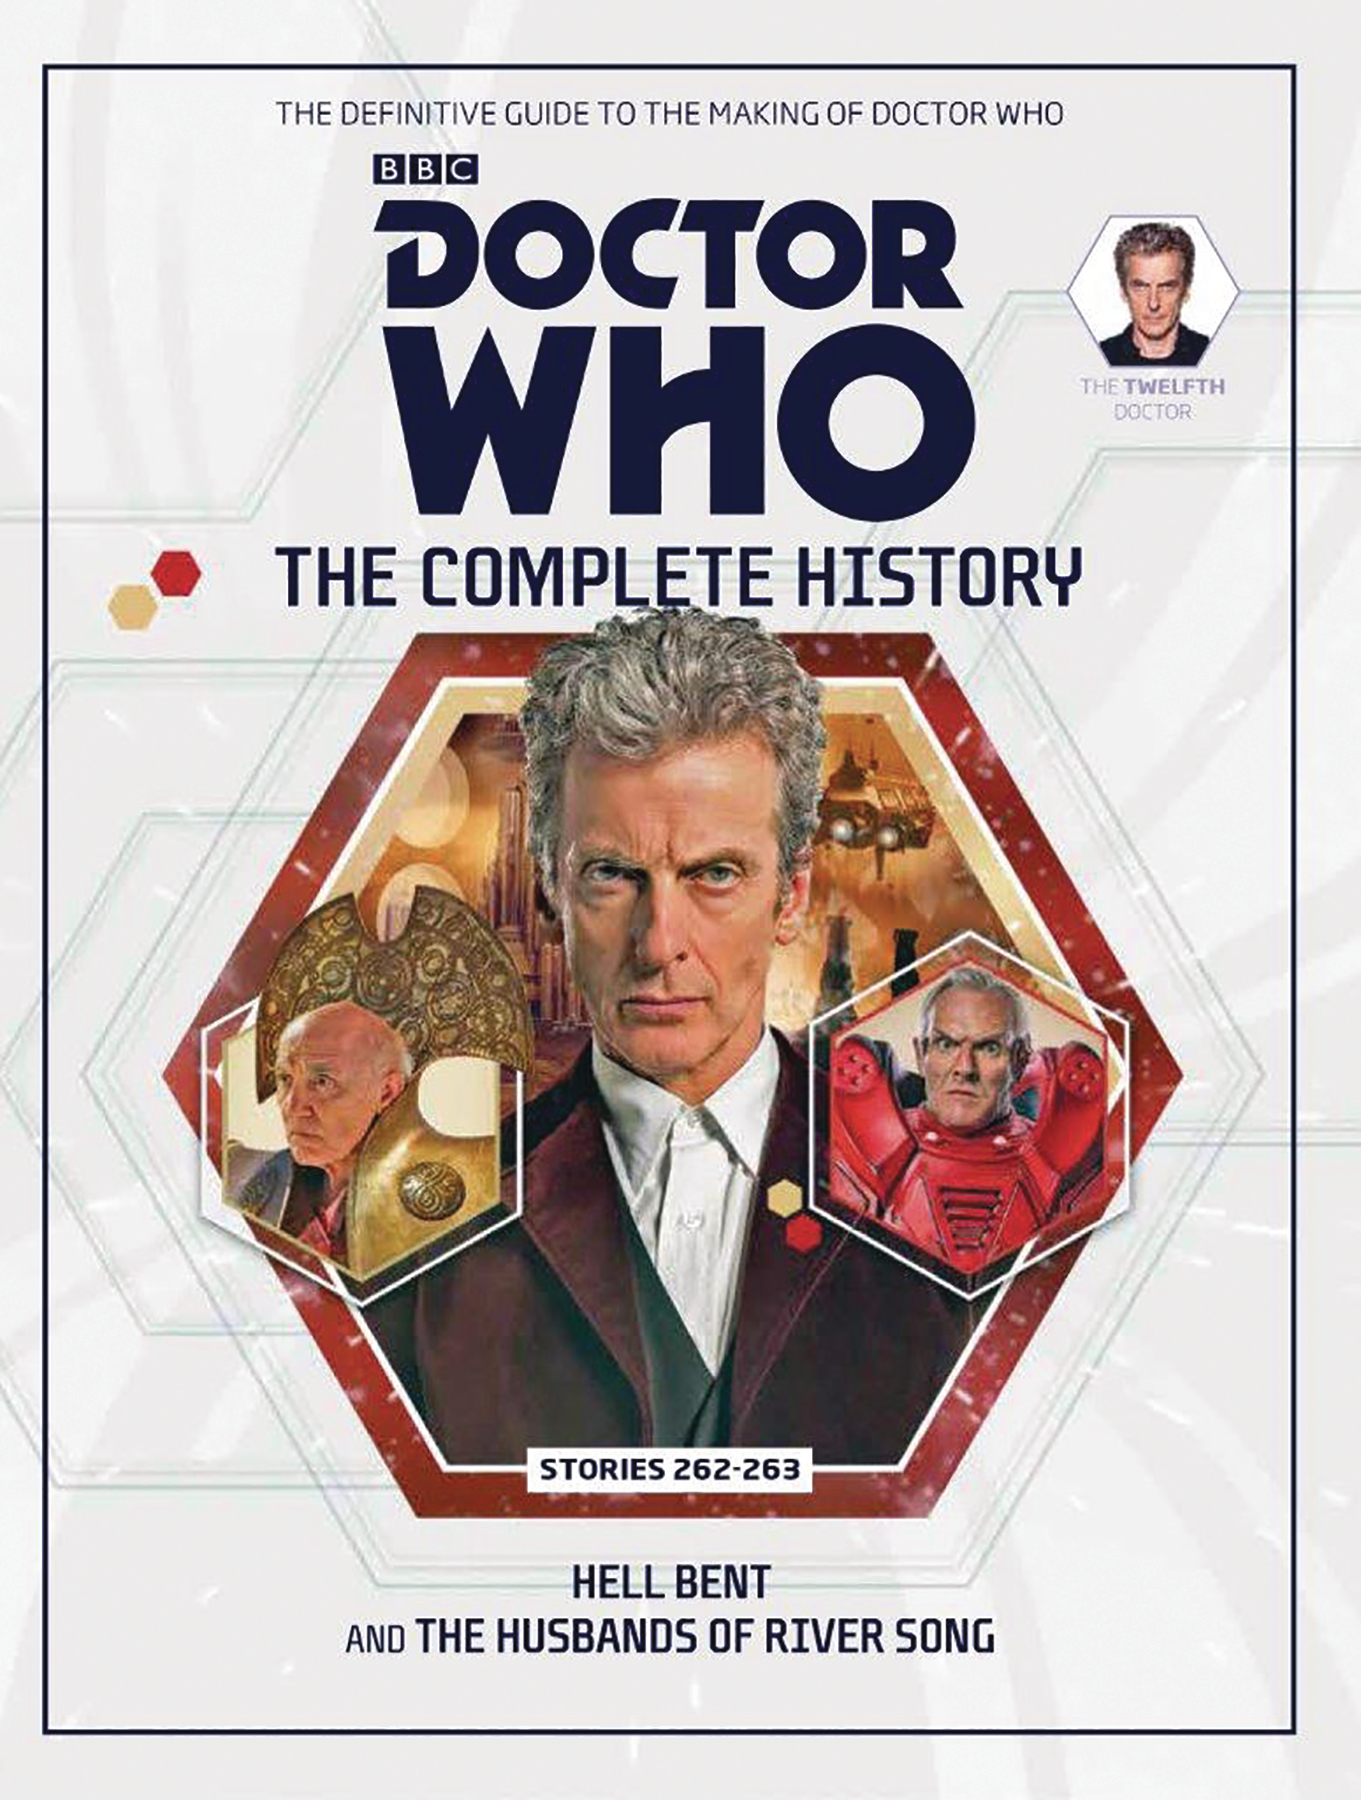 DOCTOR WHO COMP HIST HC VOL 80 12TH DOCTOR STORIES 262-263 (